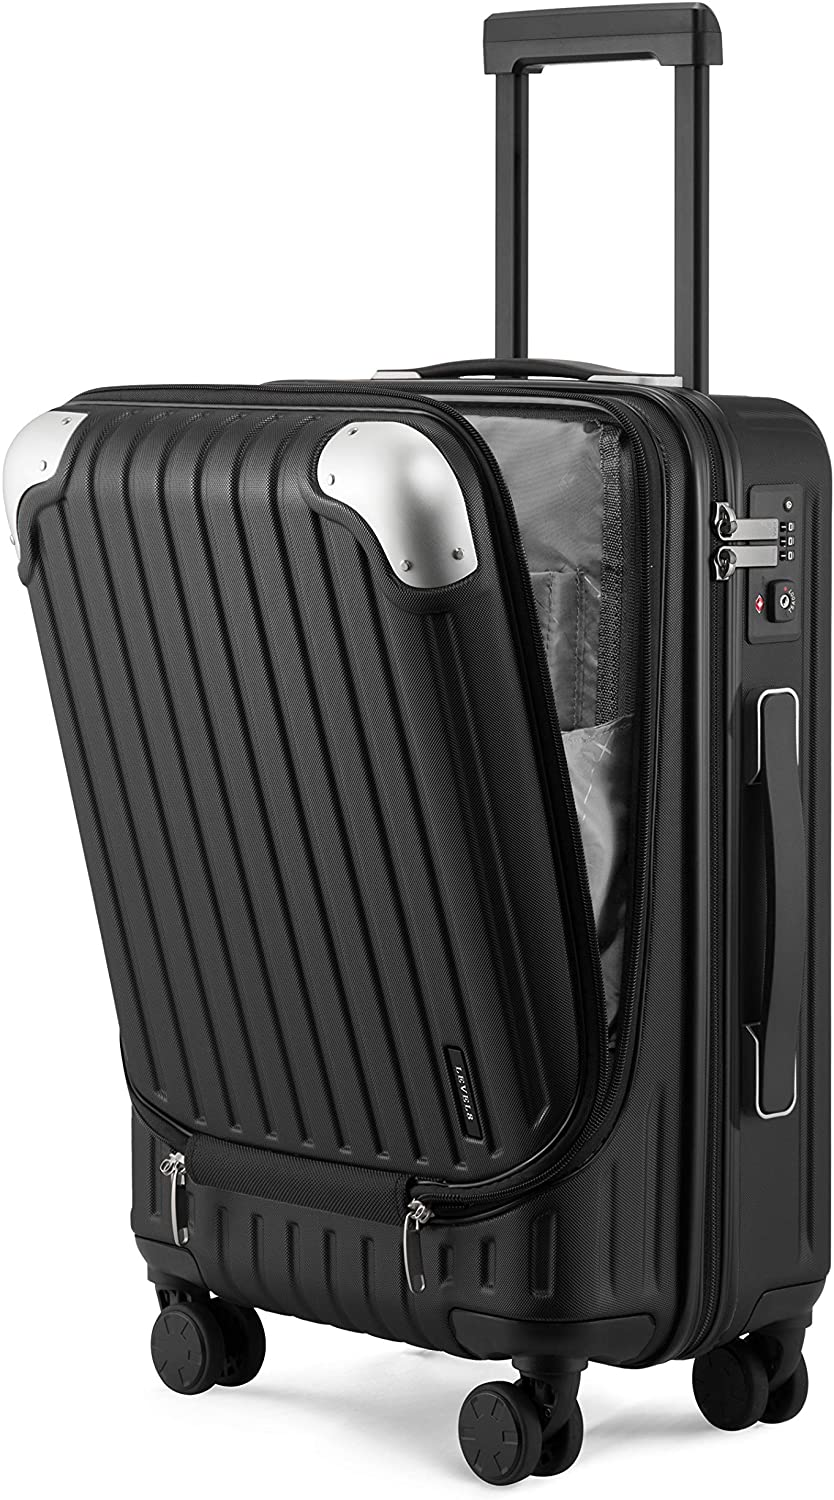 """LEVEL8 Luggage Hardside Suitcase PC+ABS Spinner Built-in TSA Lock, Carry on 20"""" (Black)"""